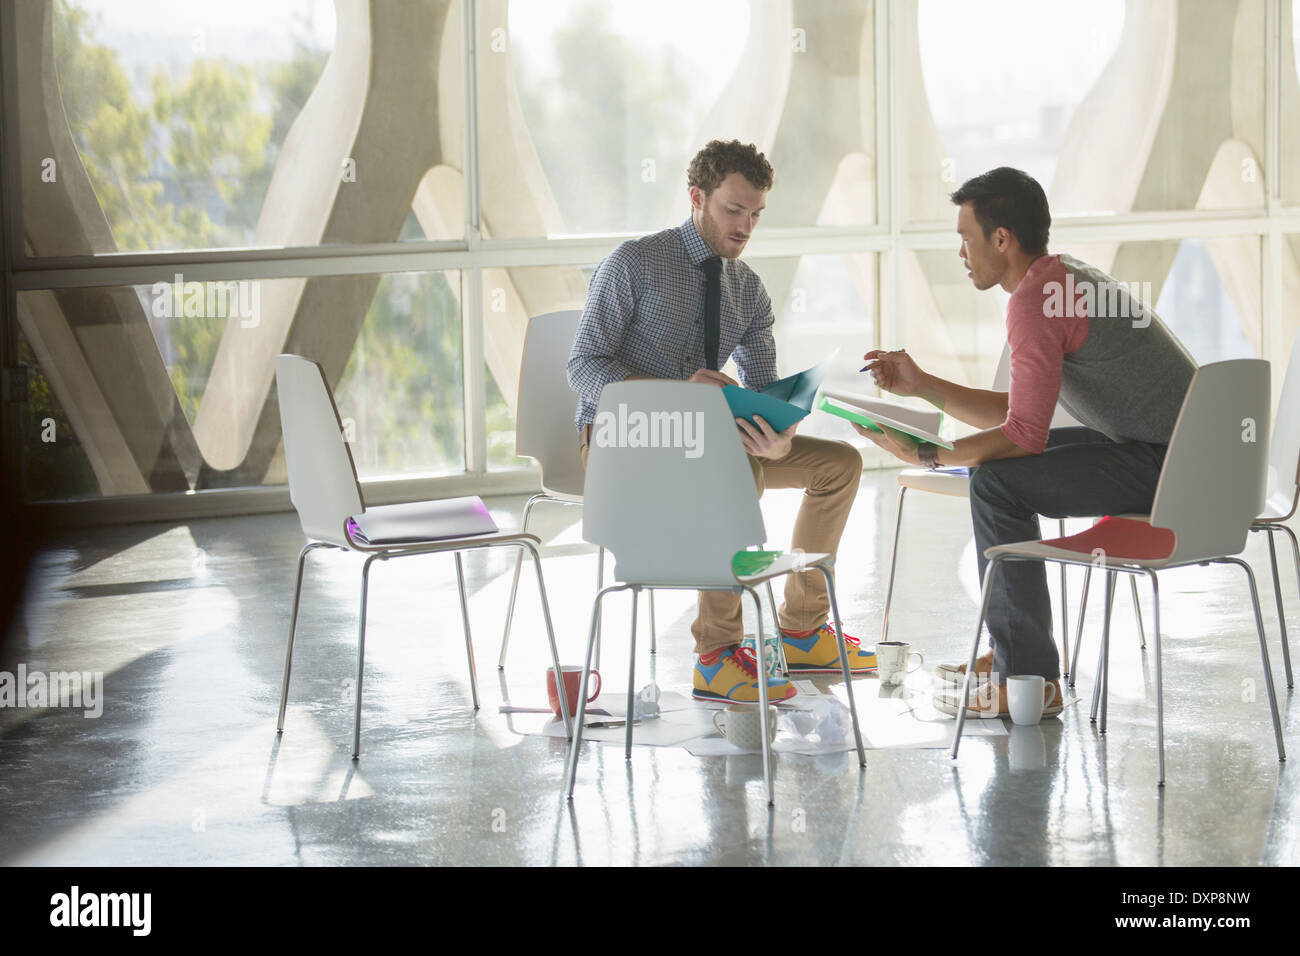 Creative businessmen brainstorming in circle of chairs - Stock Image